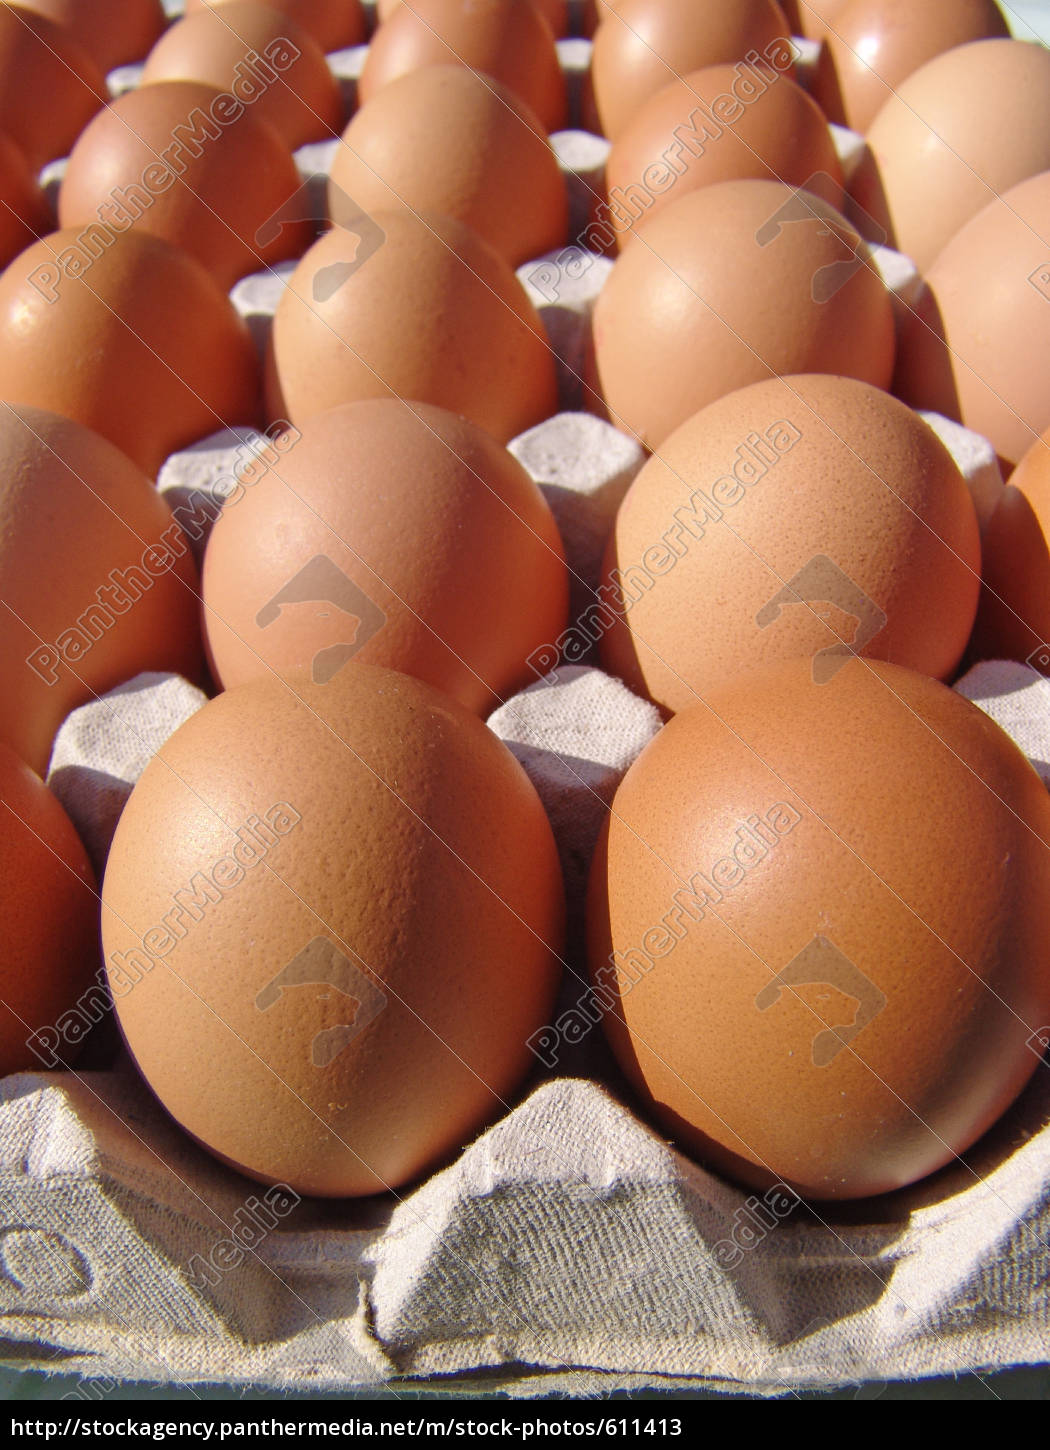 brown, eggs - 611413